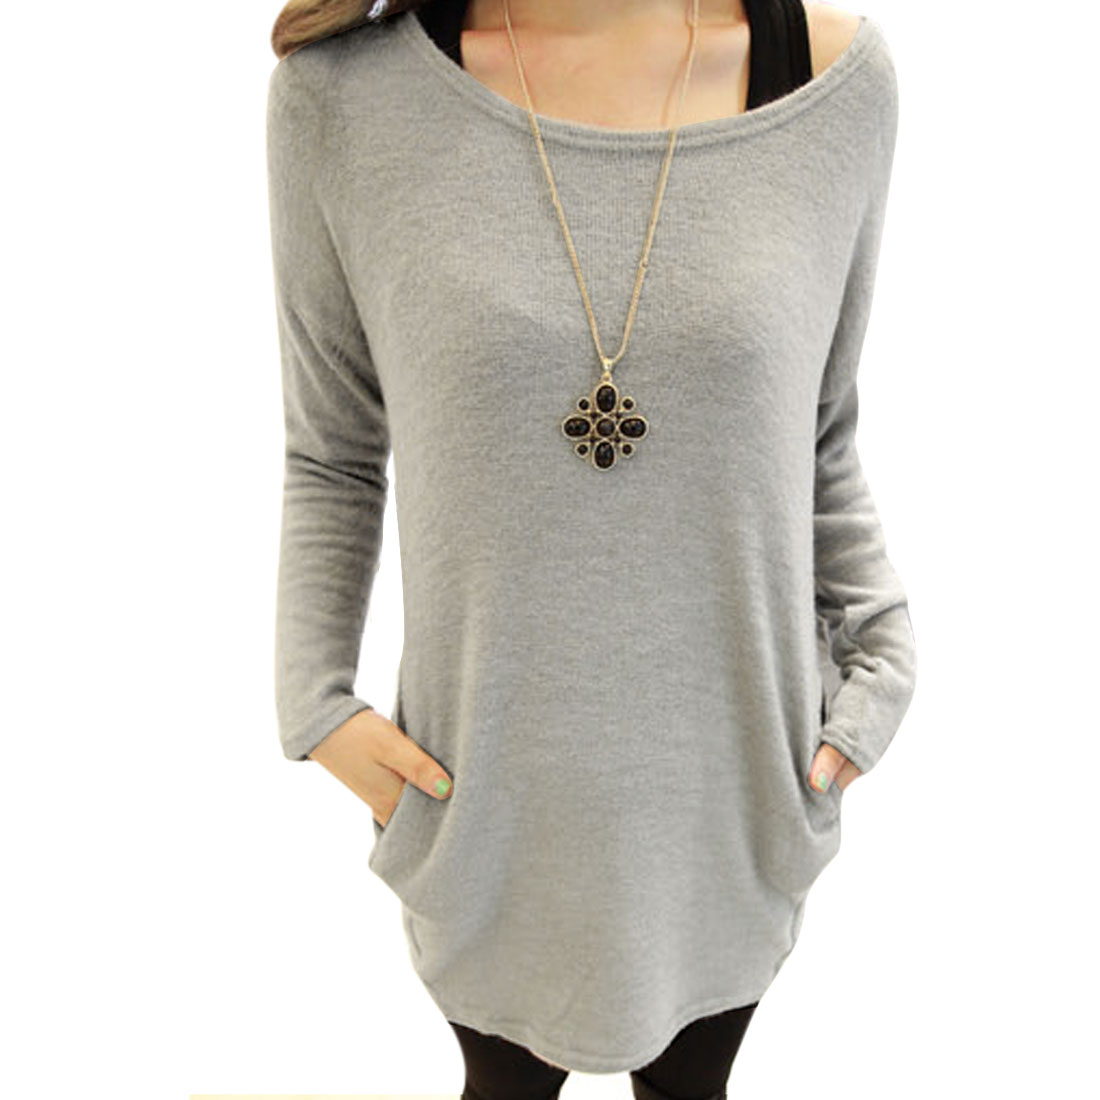 Lady Scoop Neck Long-sleeved Two Side Pockets Light Gray Knit Shirt S